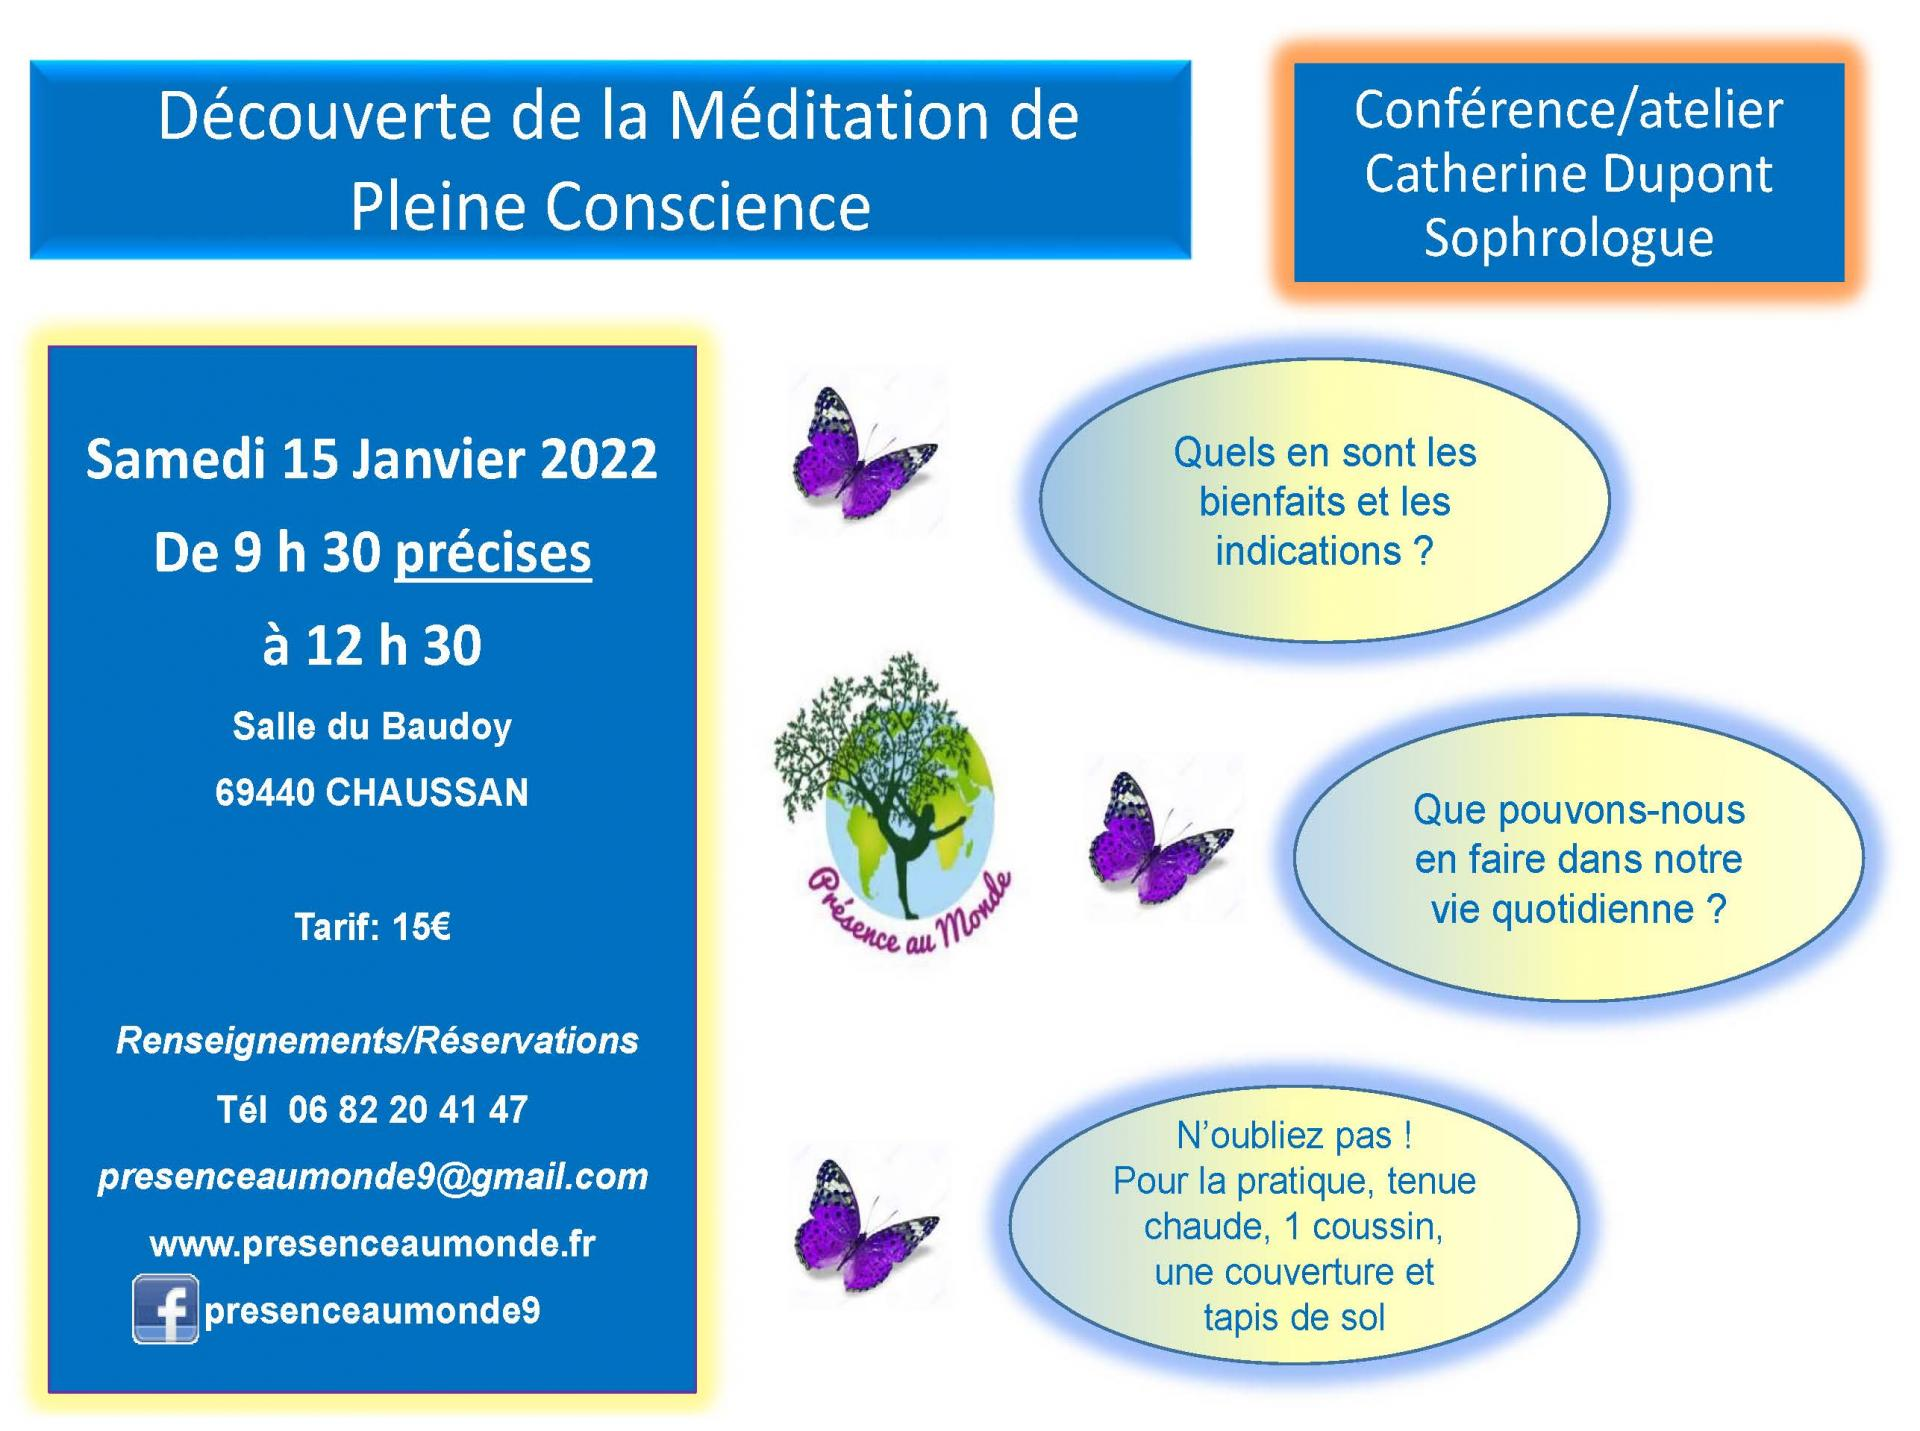 Conference catherine dupont